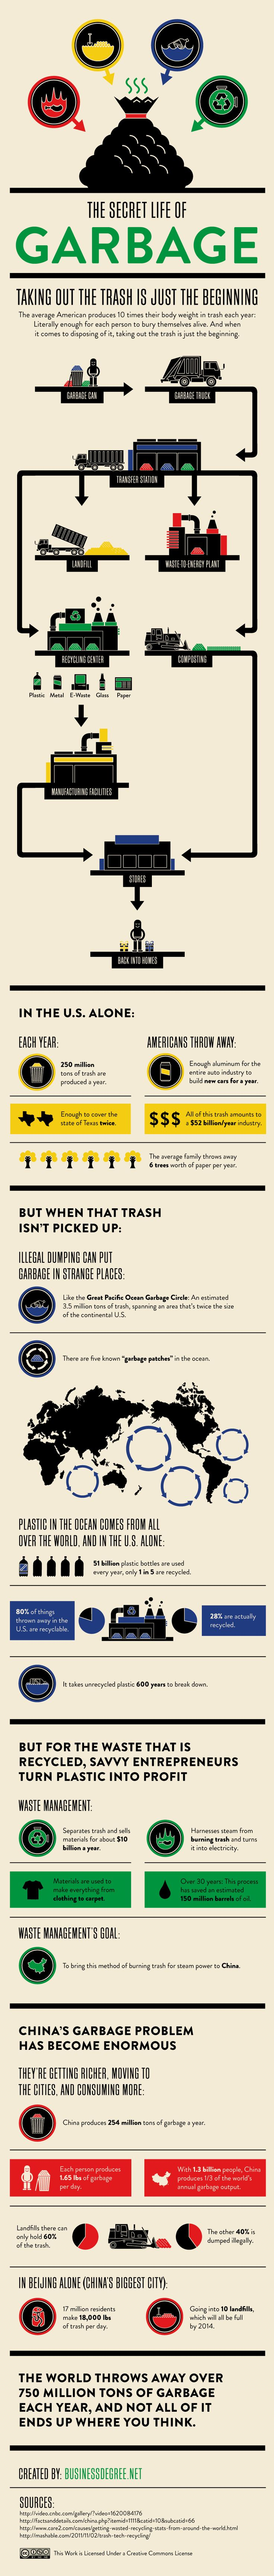 Decent infographic, EXCEPT BURNING IS NEVER a good idea. We can divert 90% of the 'waste' stream. Oy, @Waste Management what are you doing? This is complete green-washing. Is it better to quasi-educate? We need some designers to help us create some truthful numbers! You are burning valuable materials that we could potentially recover!  [[[The Secret Life of Garbage  http://ecowatch.org/2012/the-secret-life-of-garbage/]]]